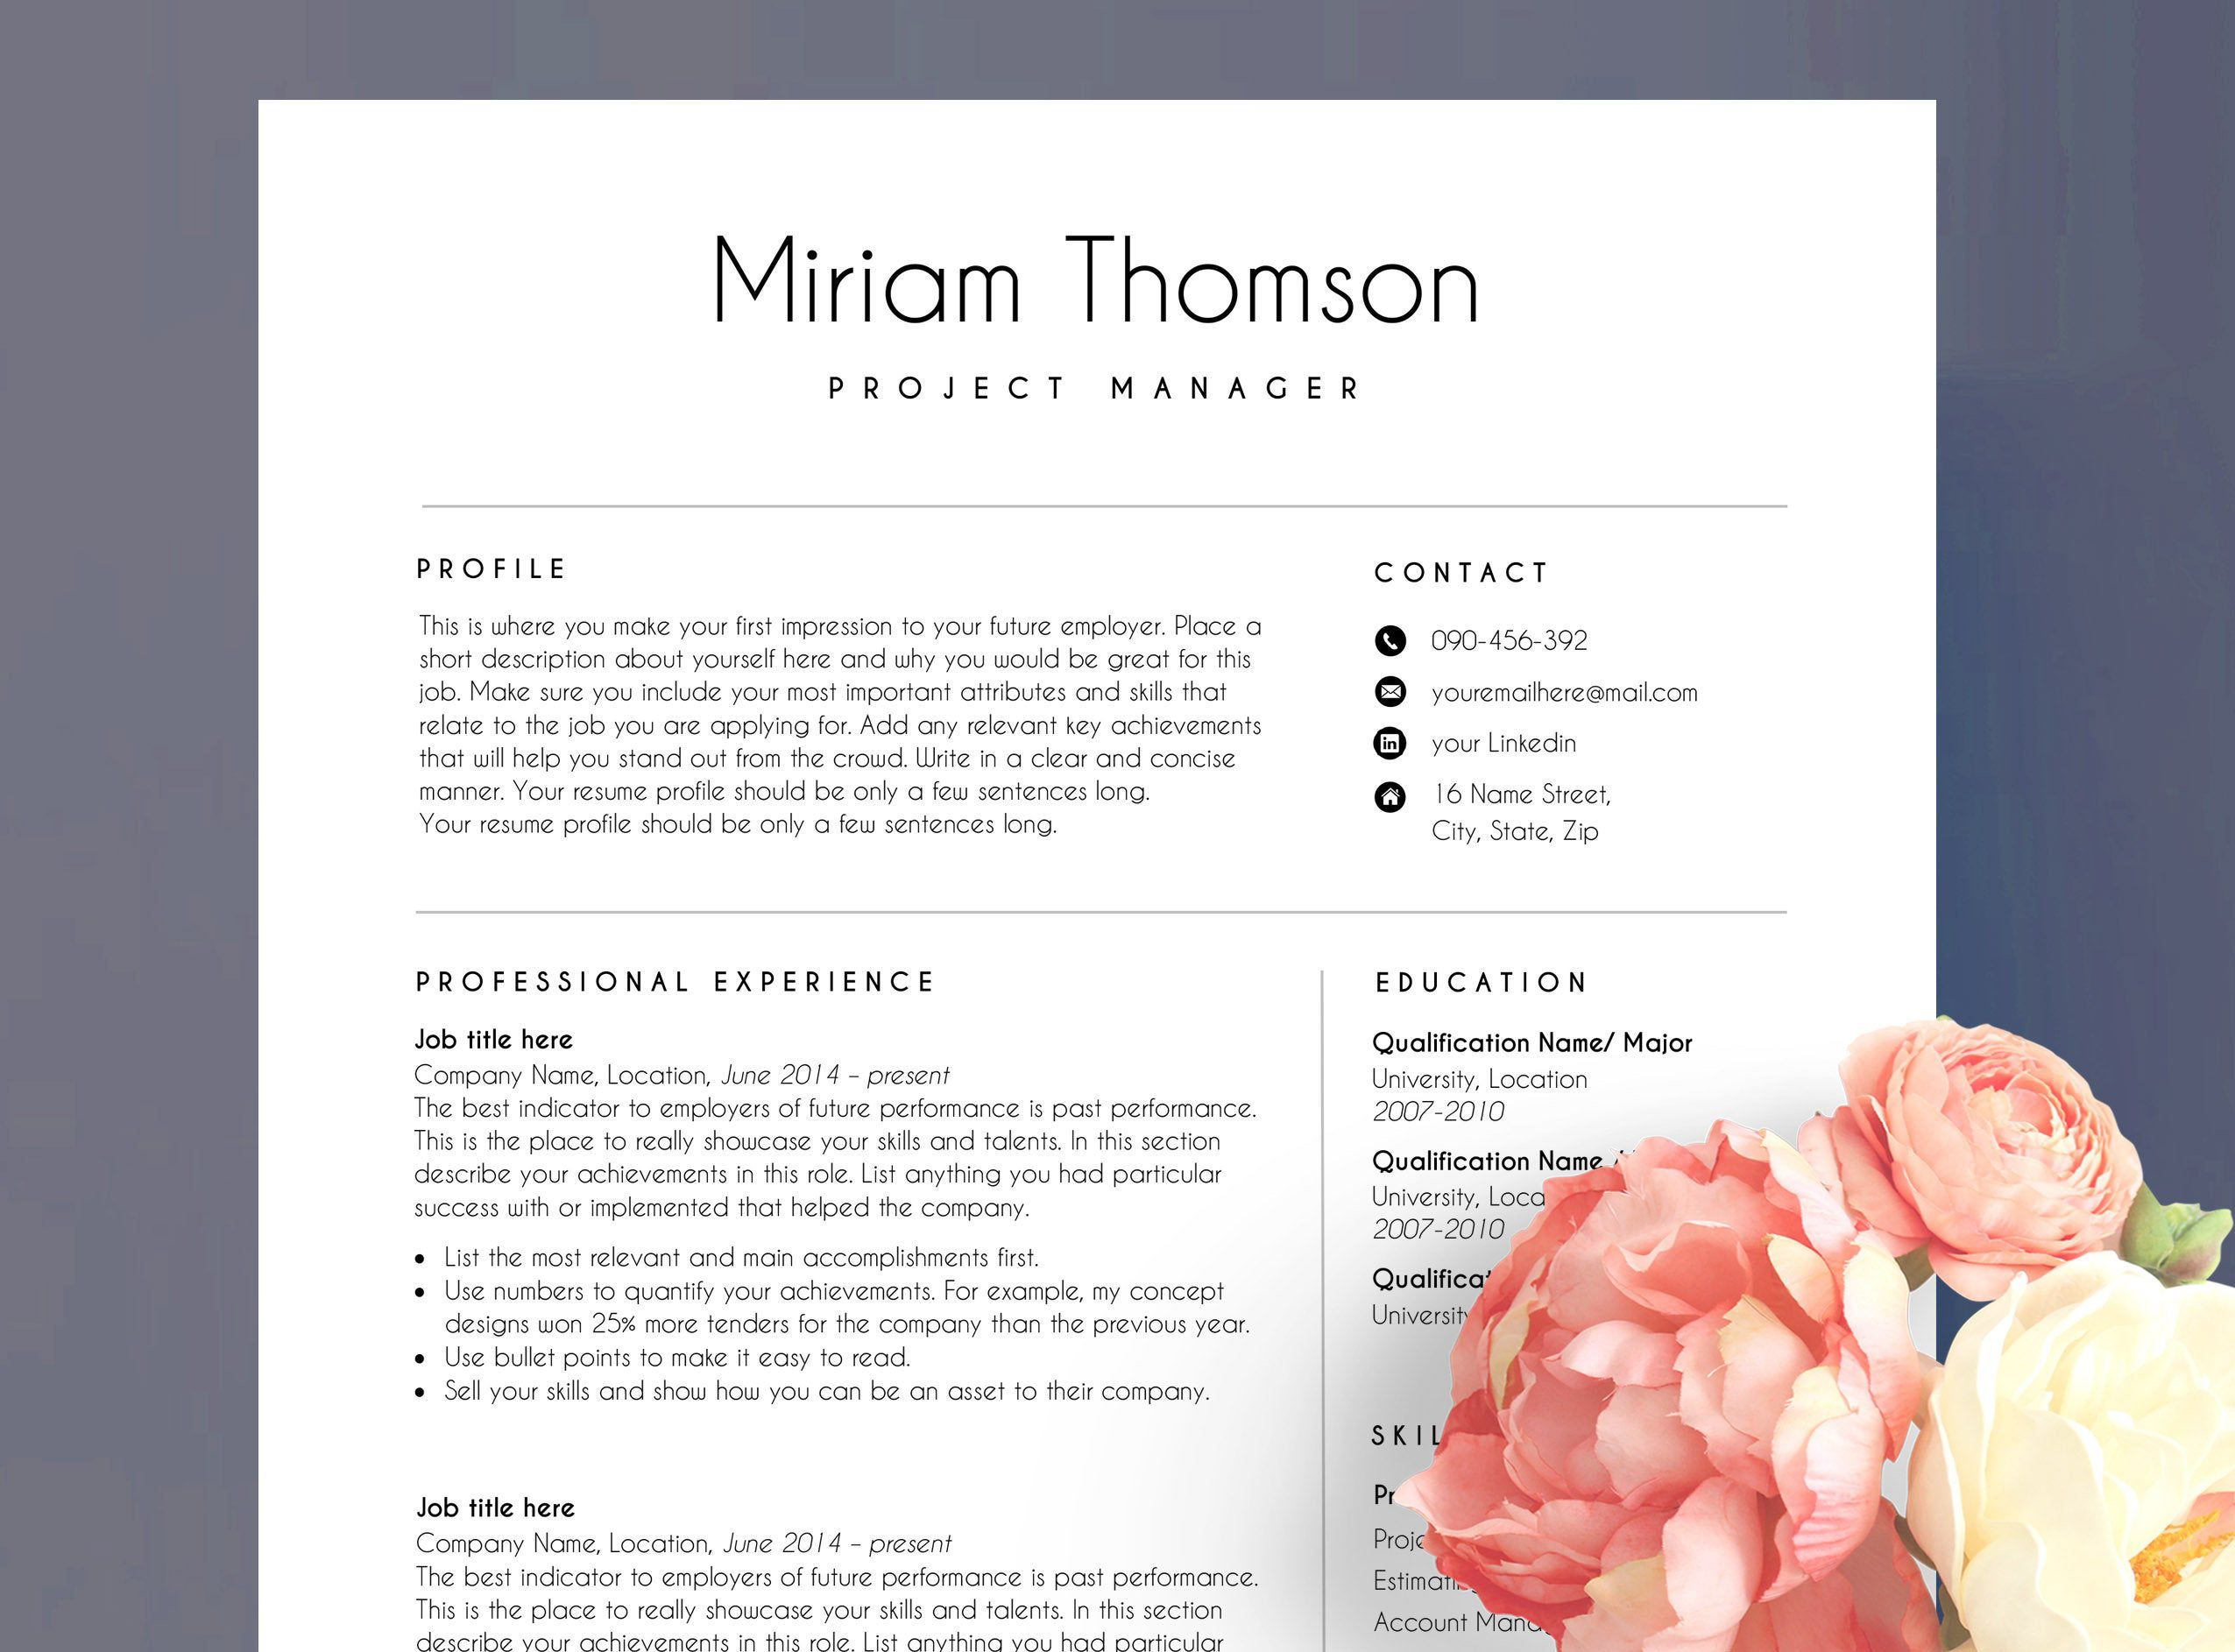 Resume template word Cover Letter CV Template Professional Resume Template Word Resume Templates Minimalist Resume Pages